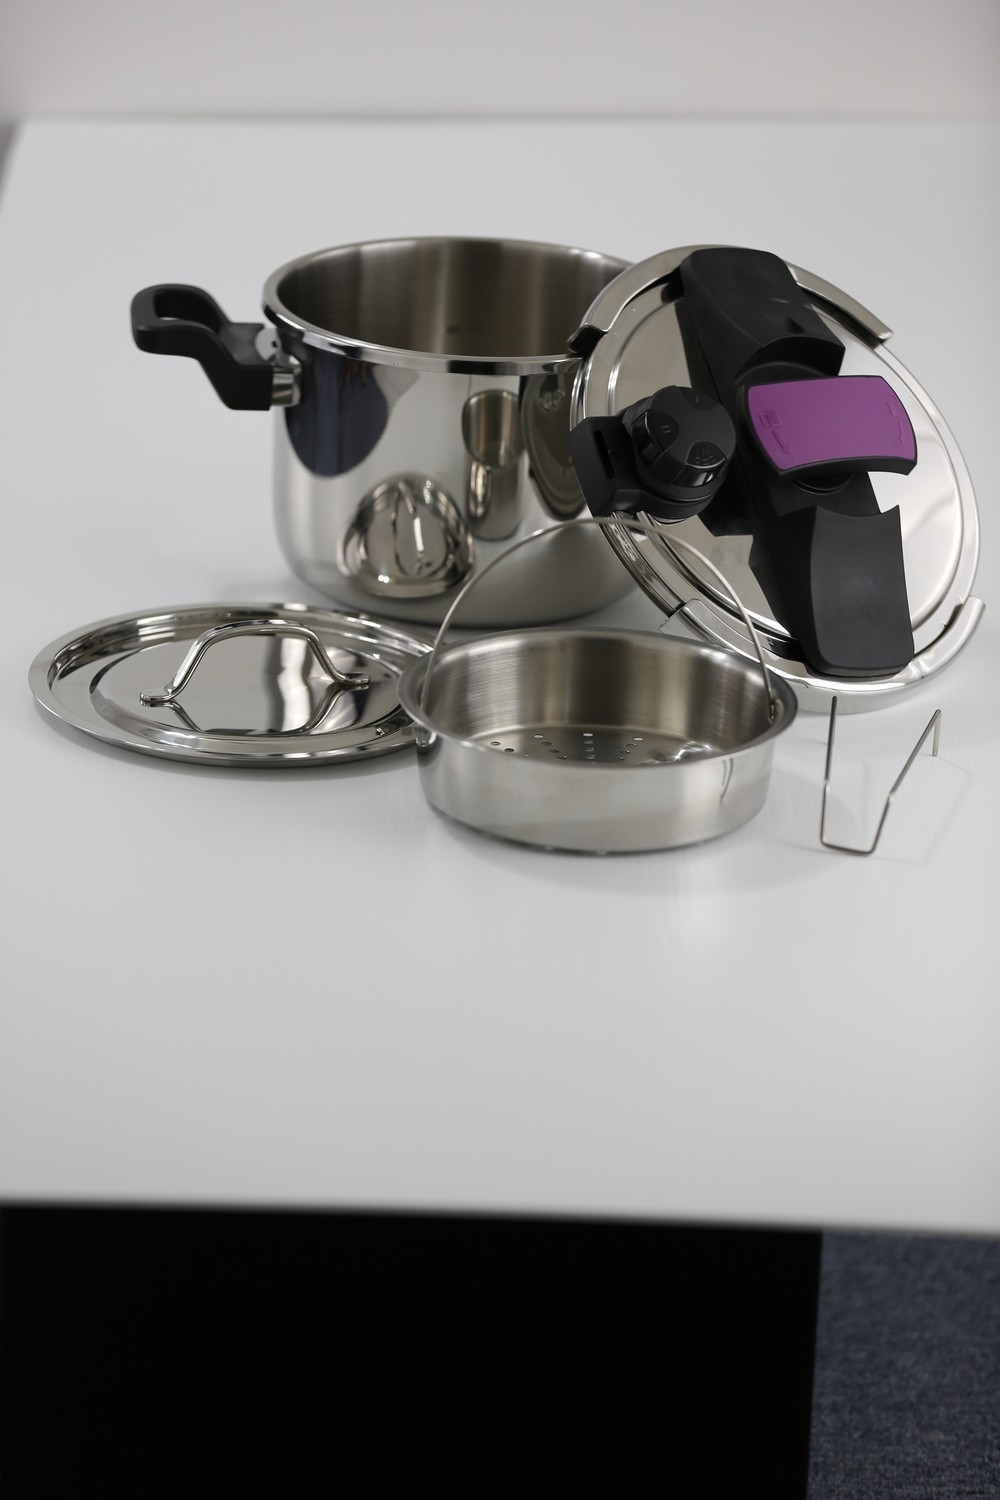 SS1 - 7.4 Qt. Stainless Steel Pressure Cooker